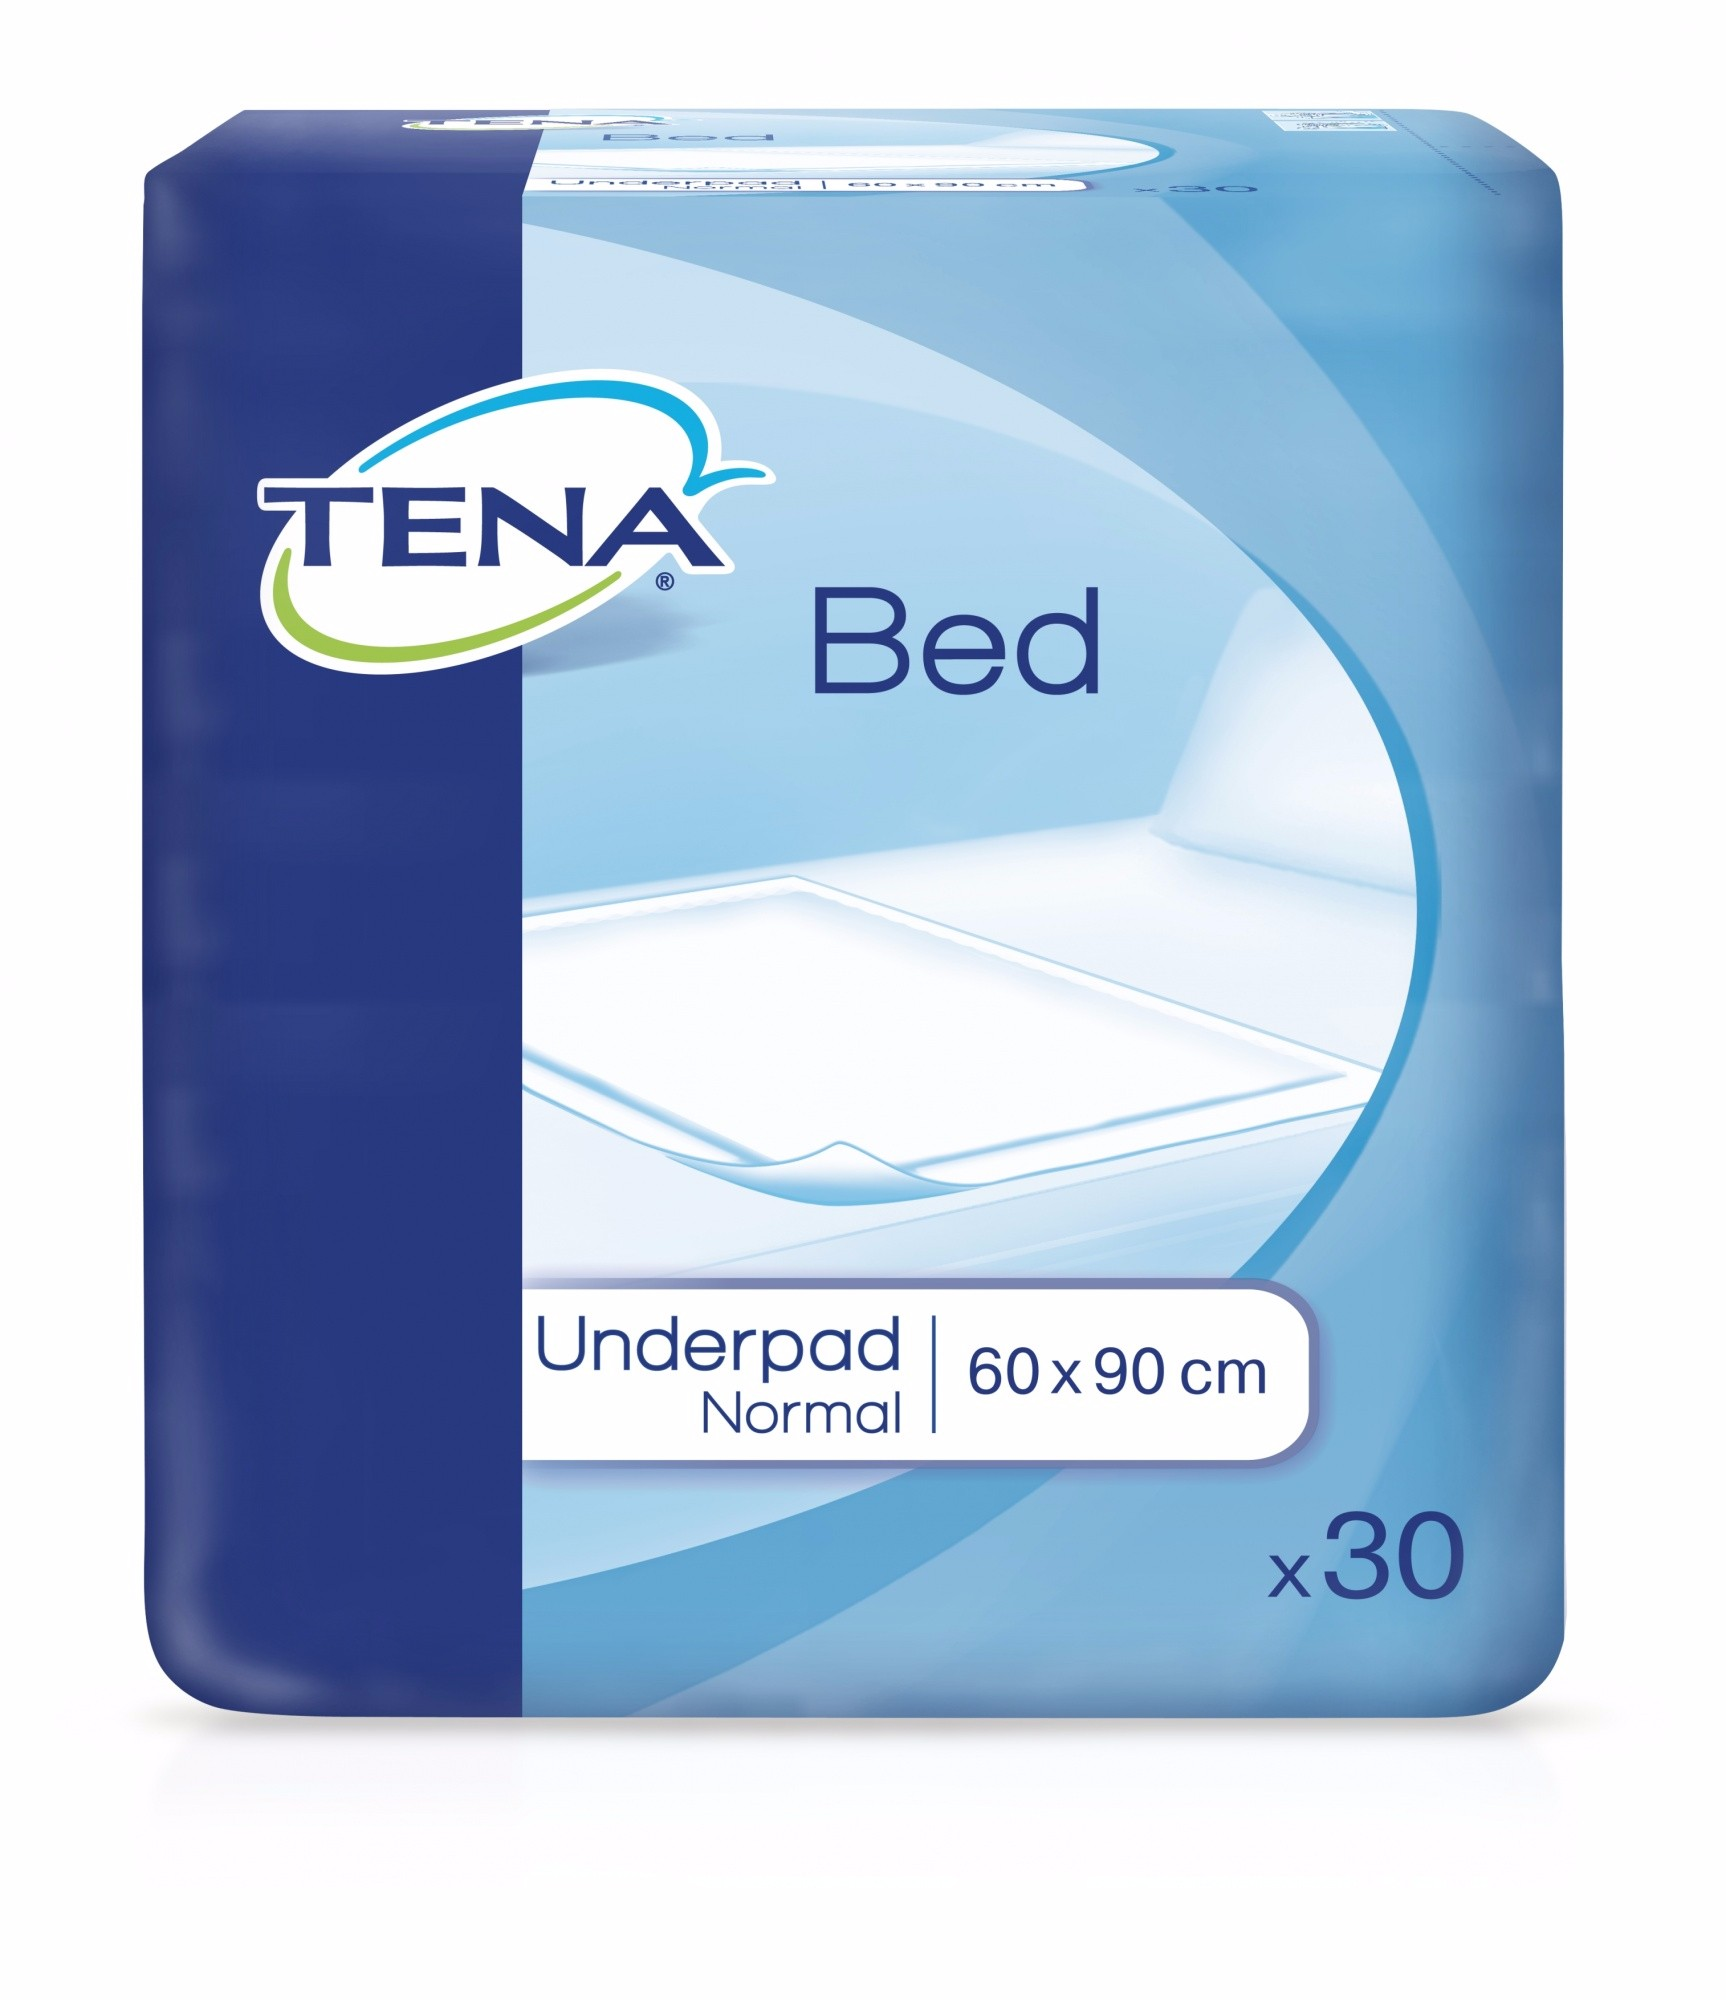 Tena Bed Plus Secure Zone paklotai 60x90cm, 30 vnt